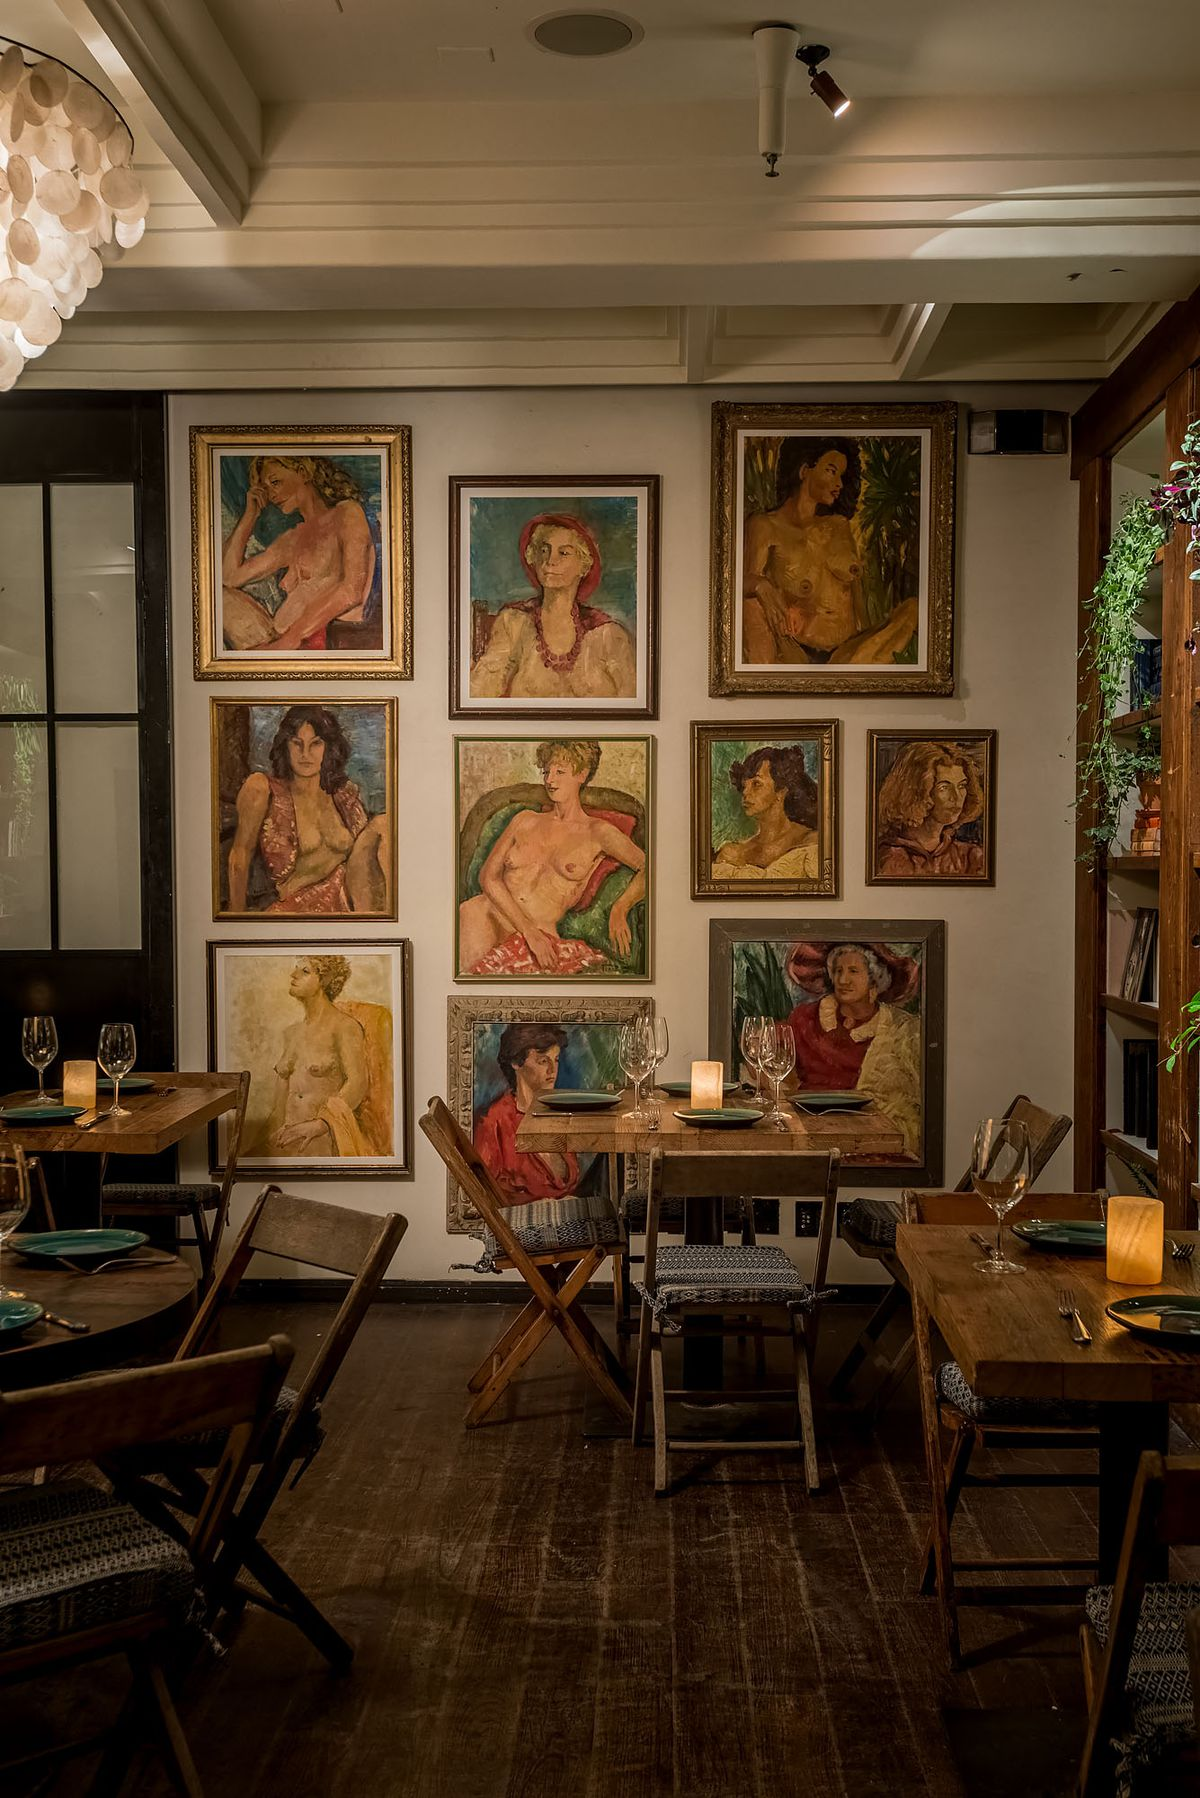 Painted artwork depicting women at various ages hangs on a restaurant wall.